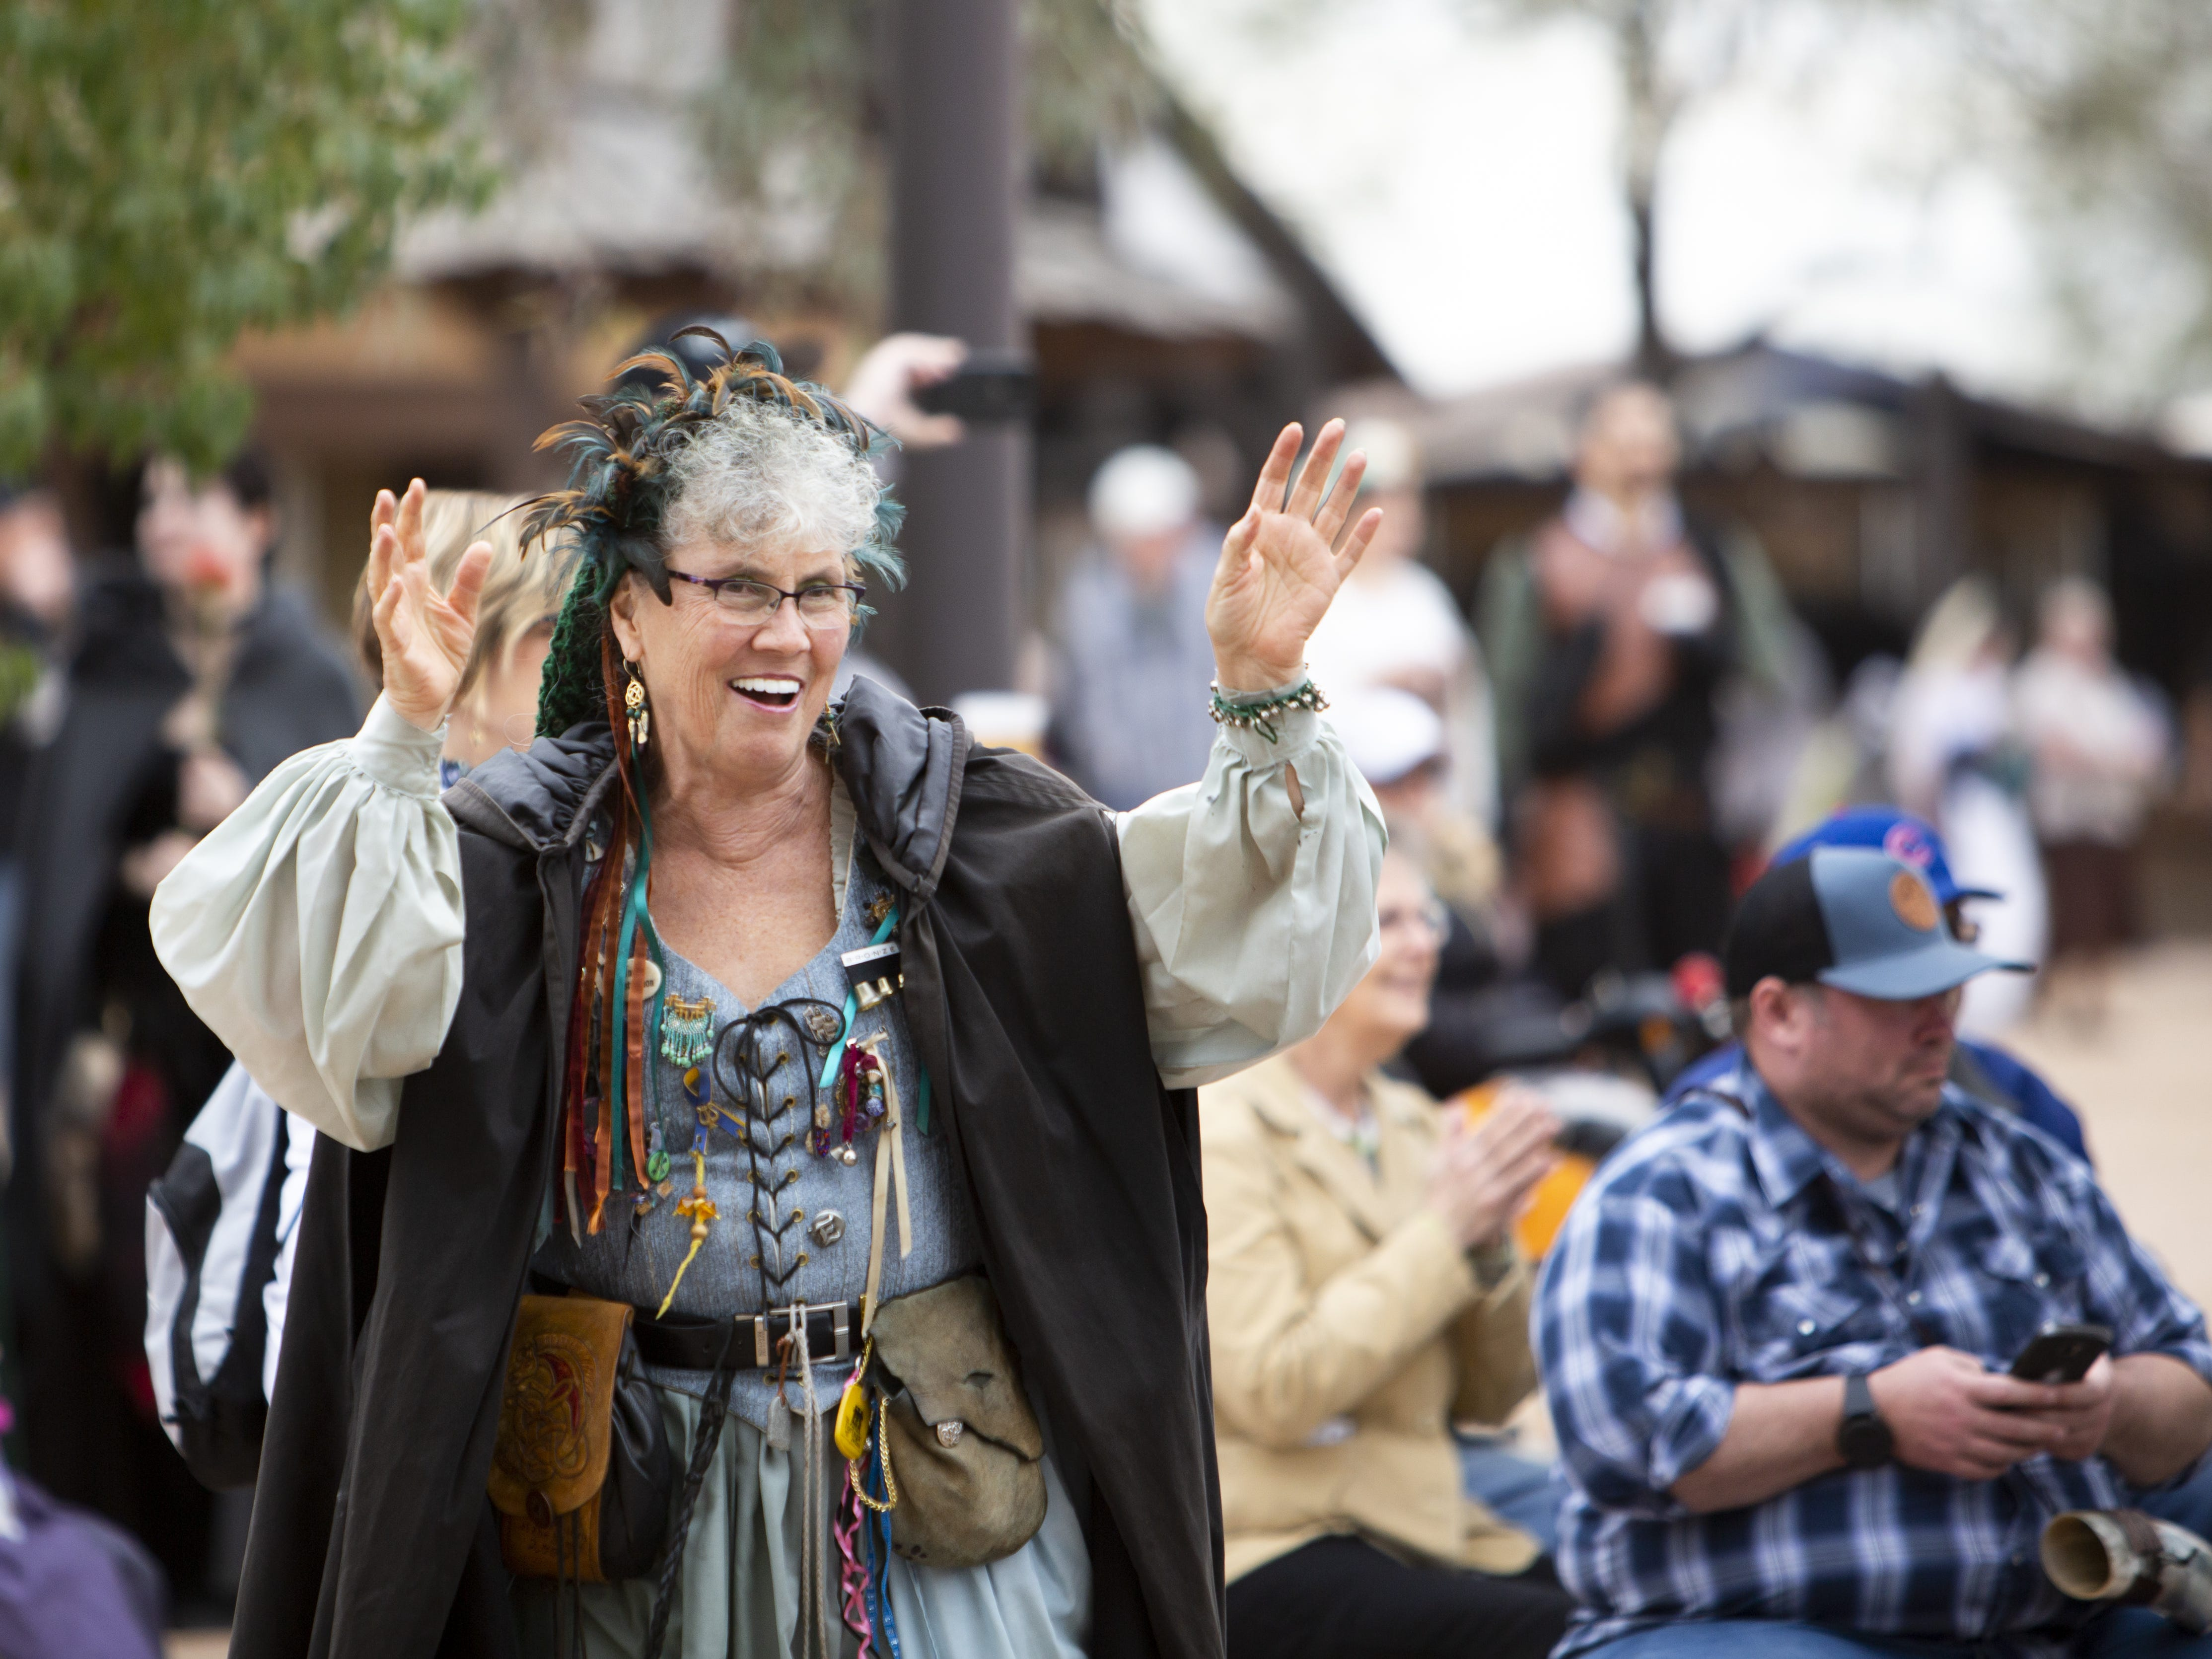 Jeannette Bonucci, who sells CDs and DVDs for performers by the stage, dances along to the Cast in Bronze performance by Frank DellaPenna at the Arizona Renaissance Festival 2019 on Feb. 9, 2019 in Gold Canyon, Ariz.